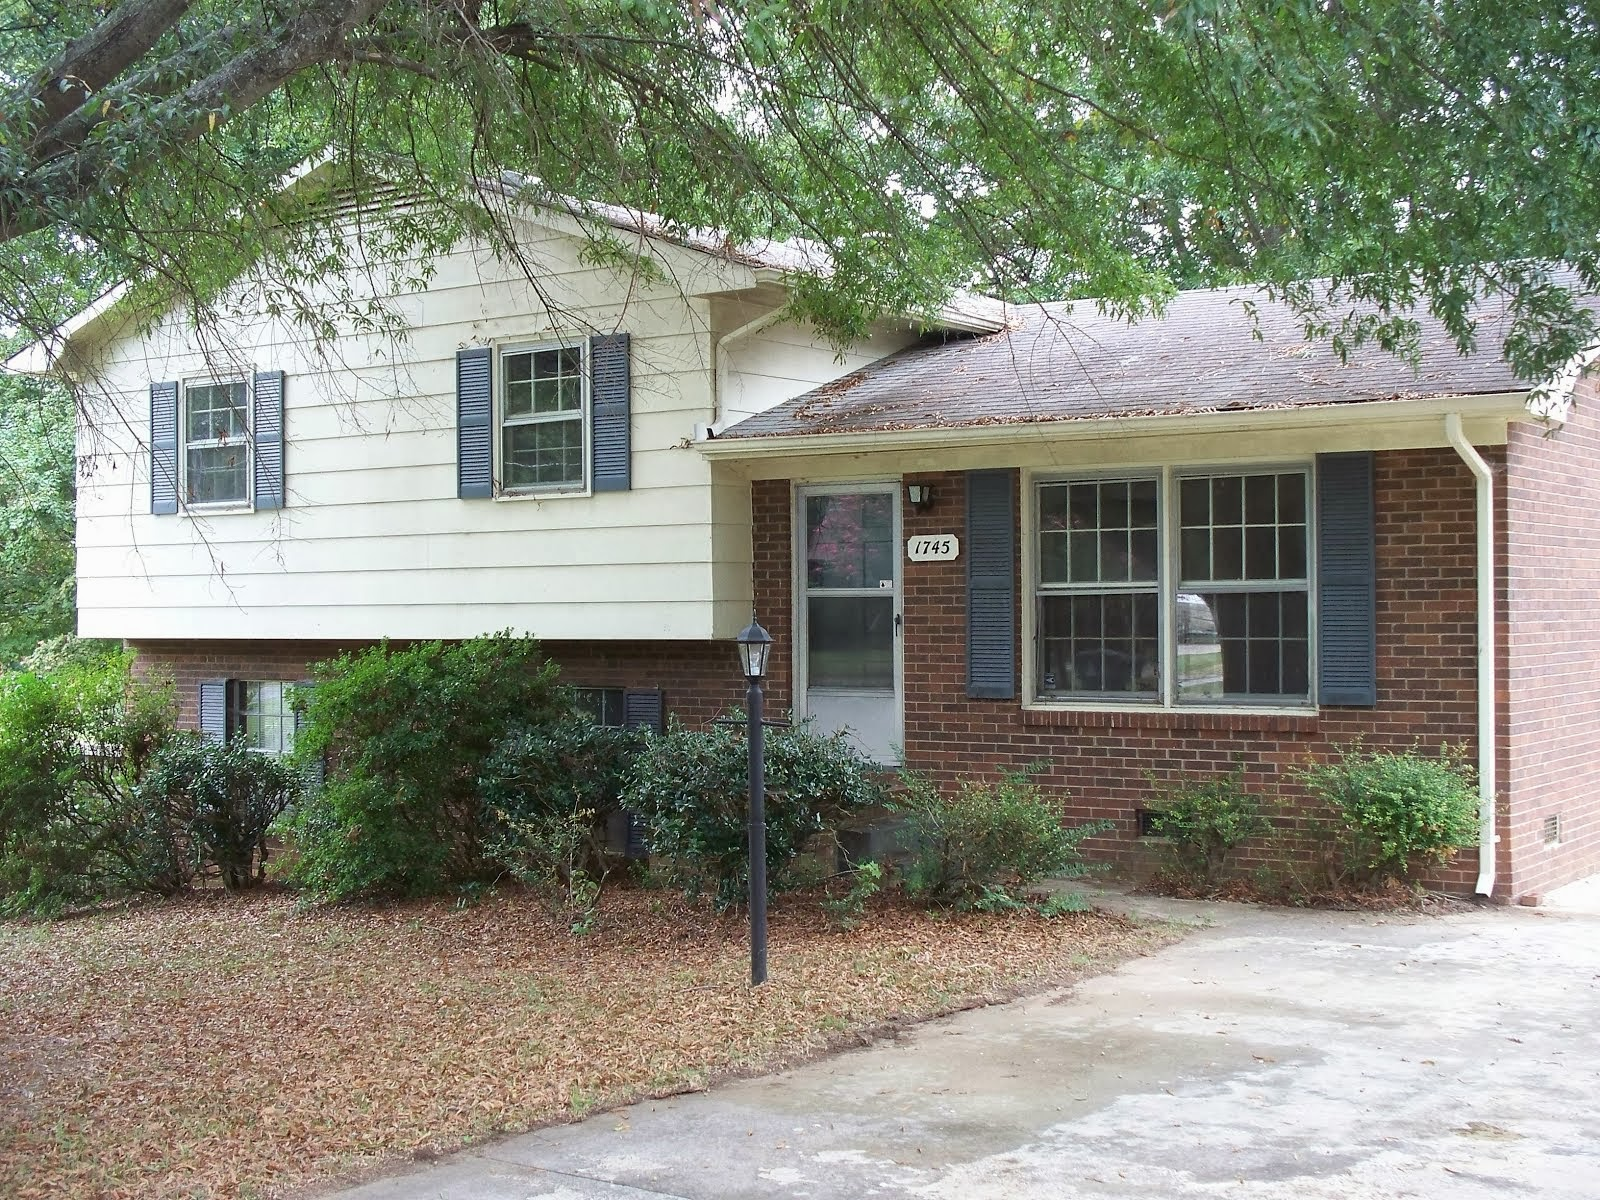 1745 SELLS ROAD Salisbury, NC ~ $109,000